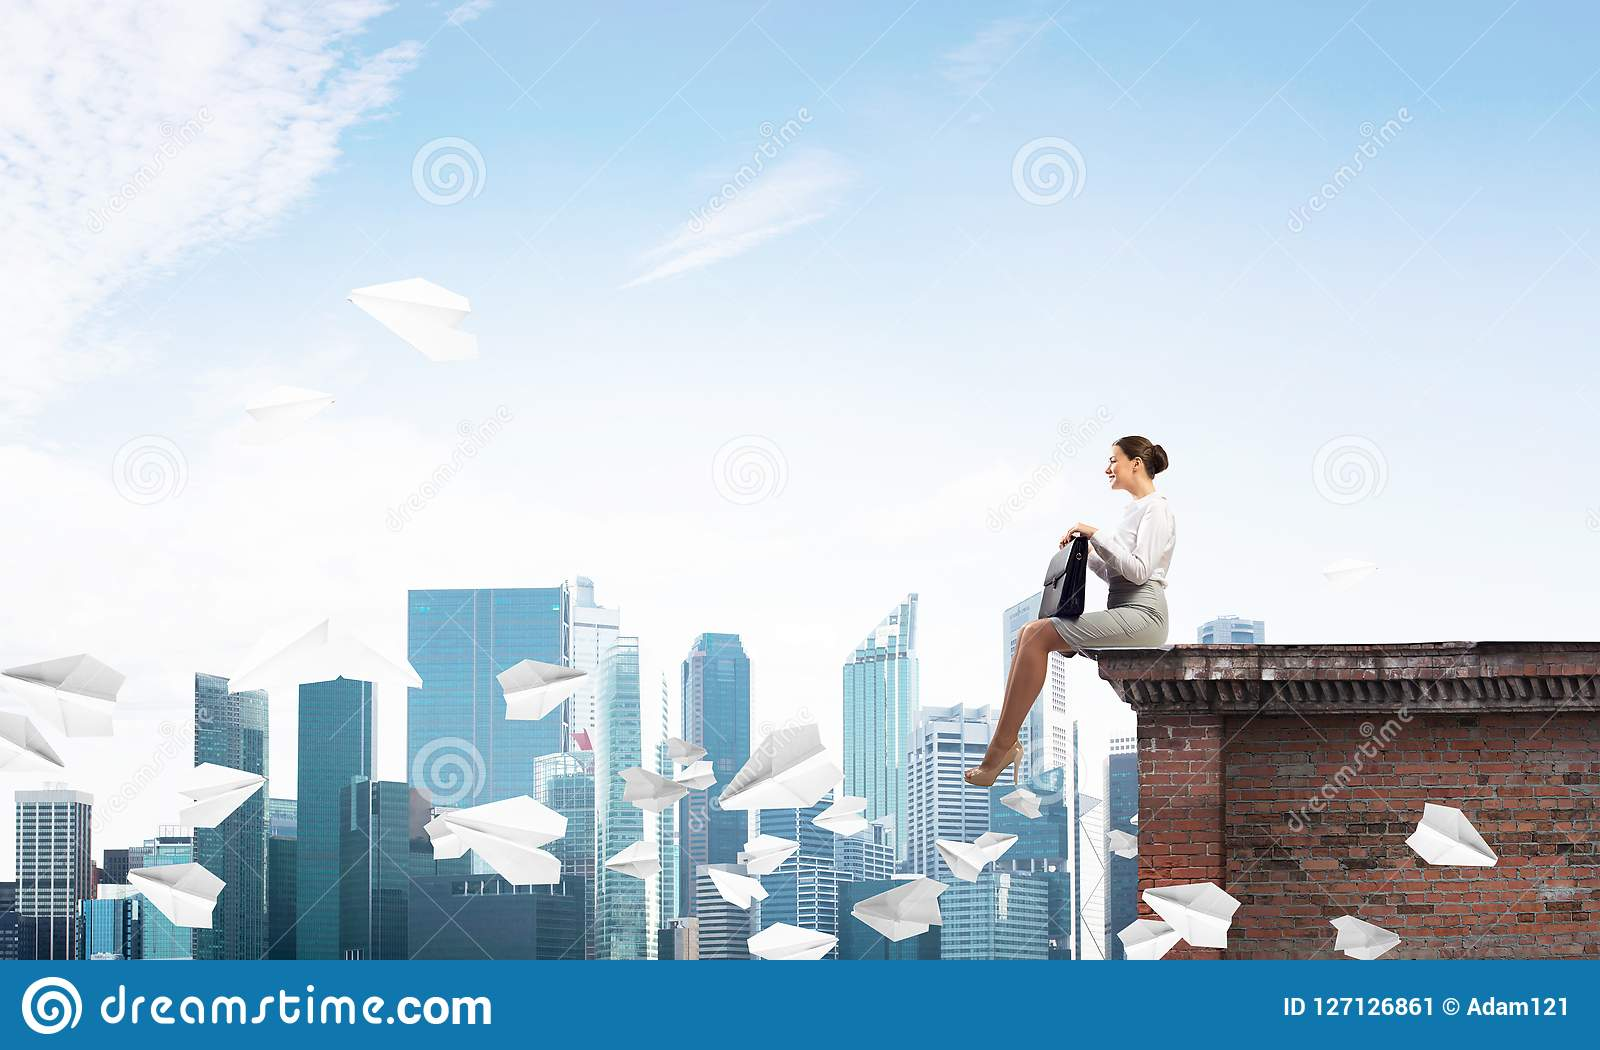 Businesswoman or accountant on building top and paper planes flying around. Mixed media